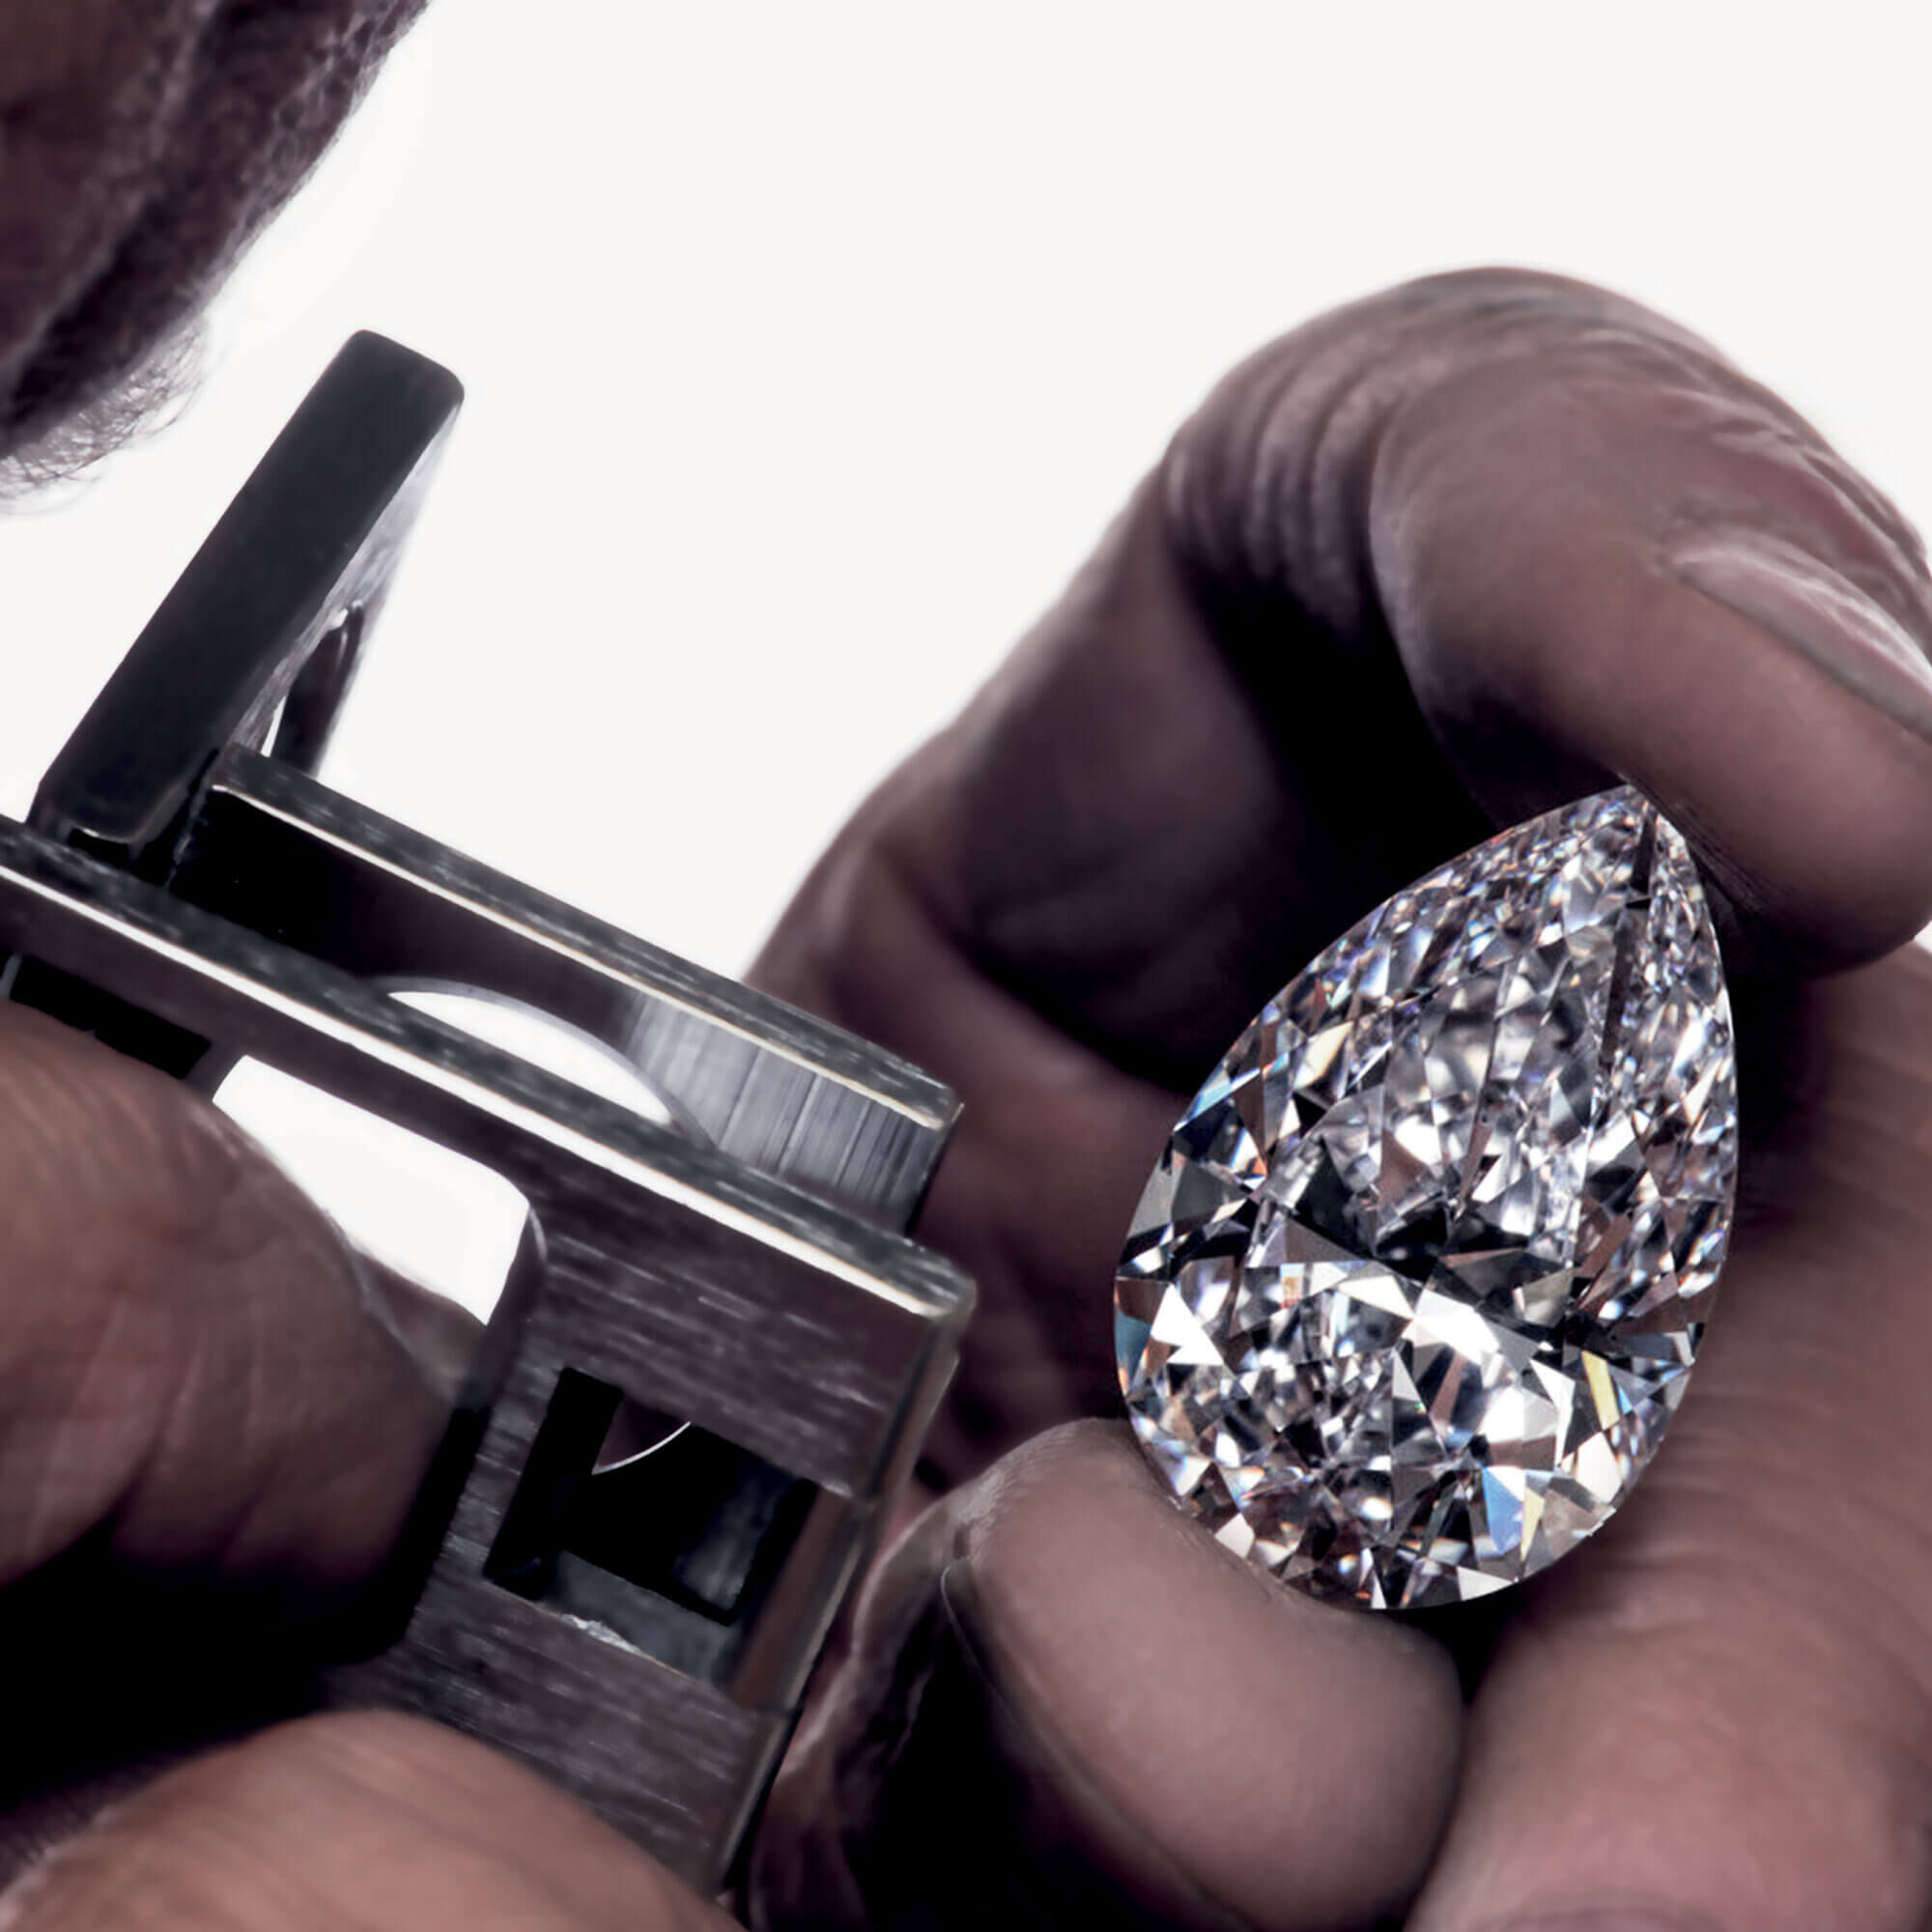 Close up of the Graff Vendôme pear shape diamond under examination